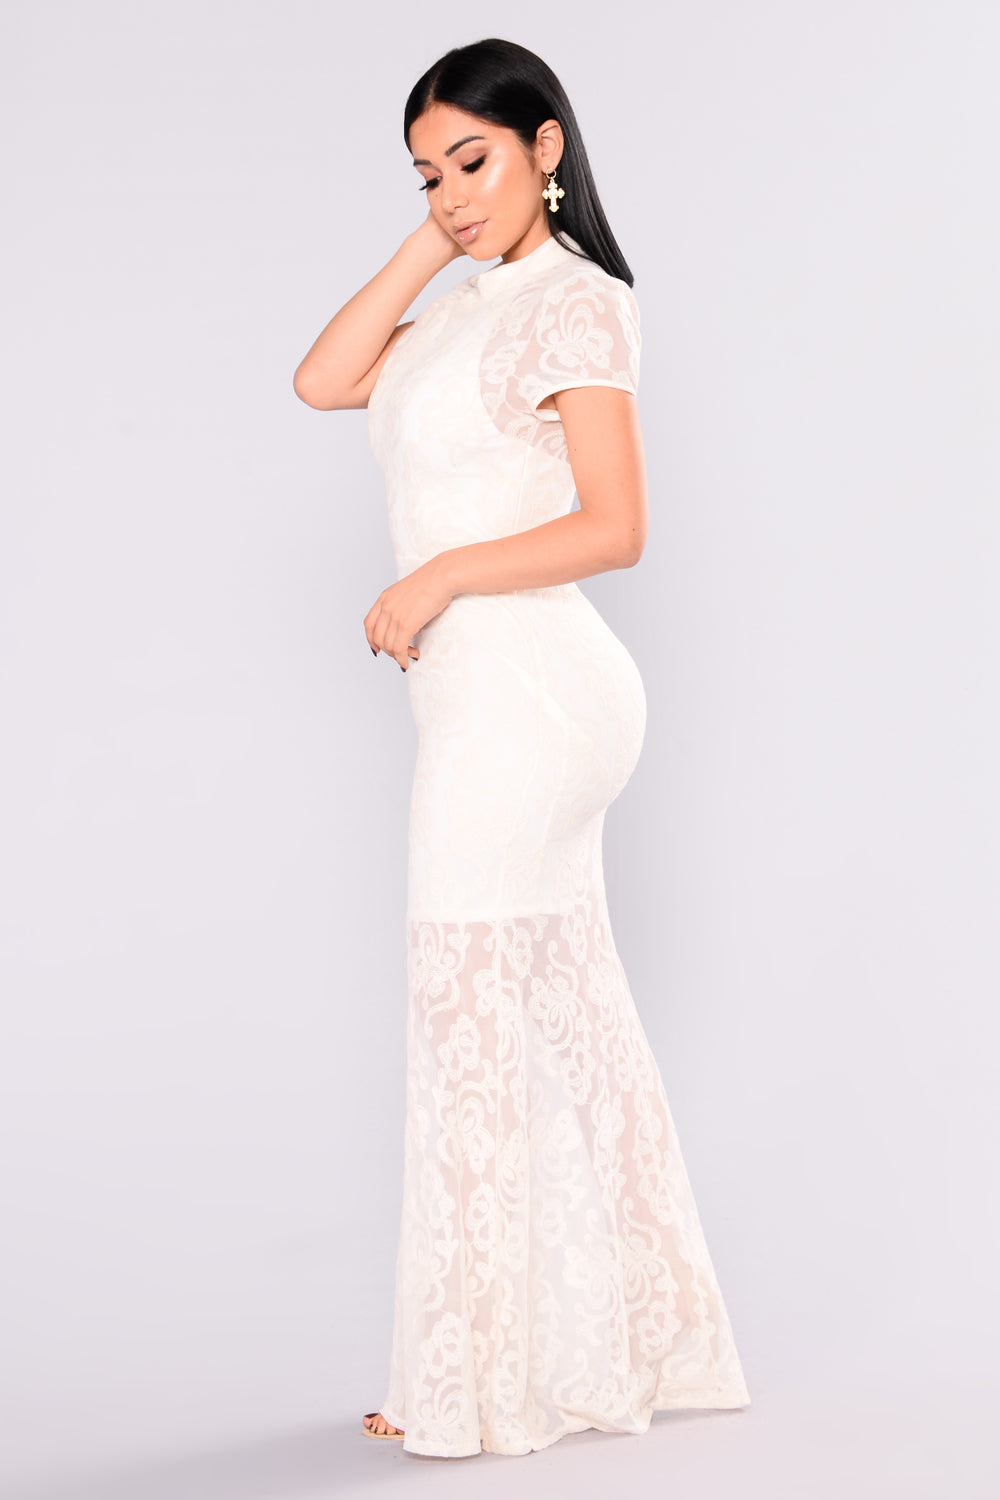 Home Grown Lace Dress - Ivory